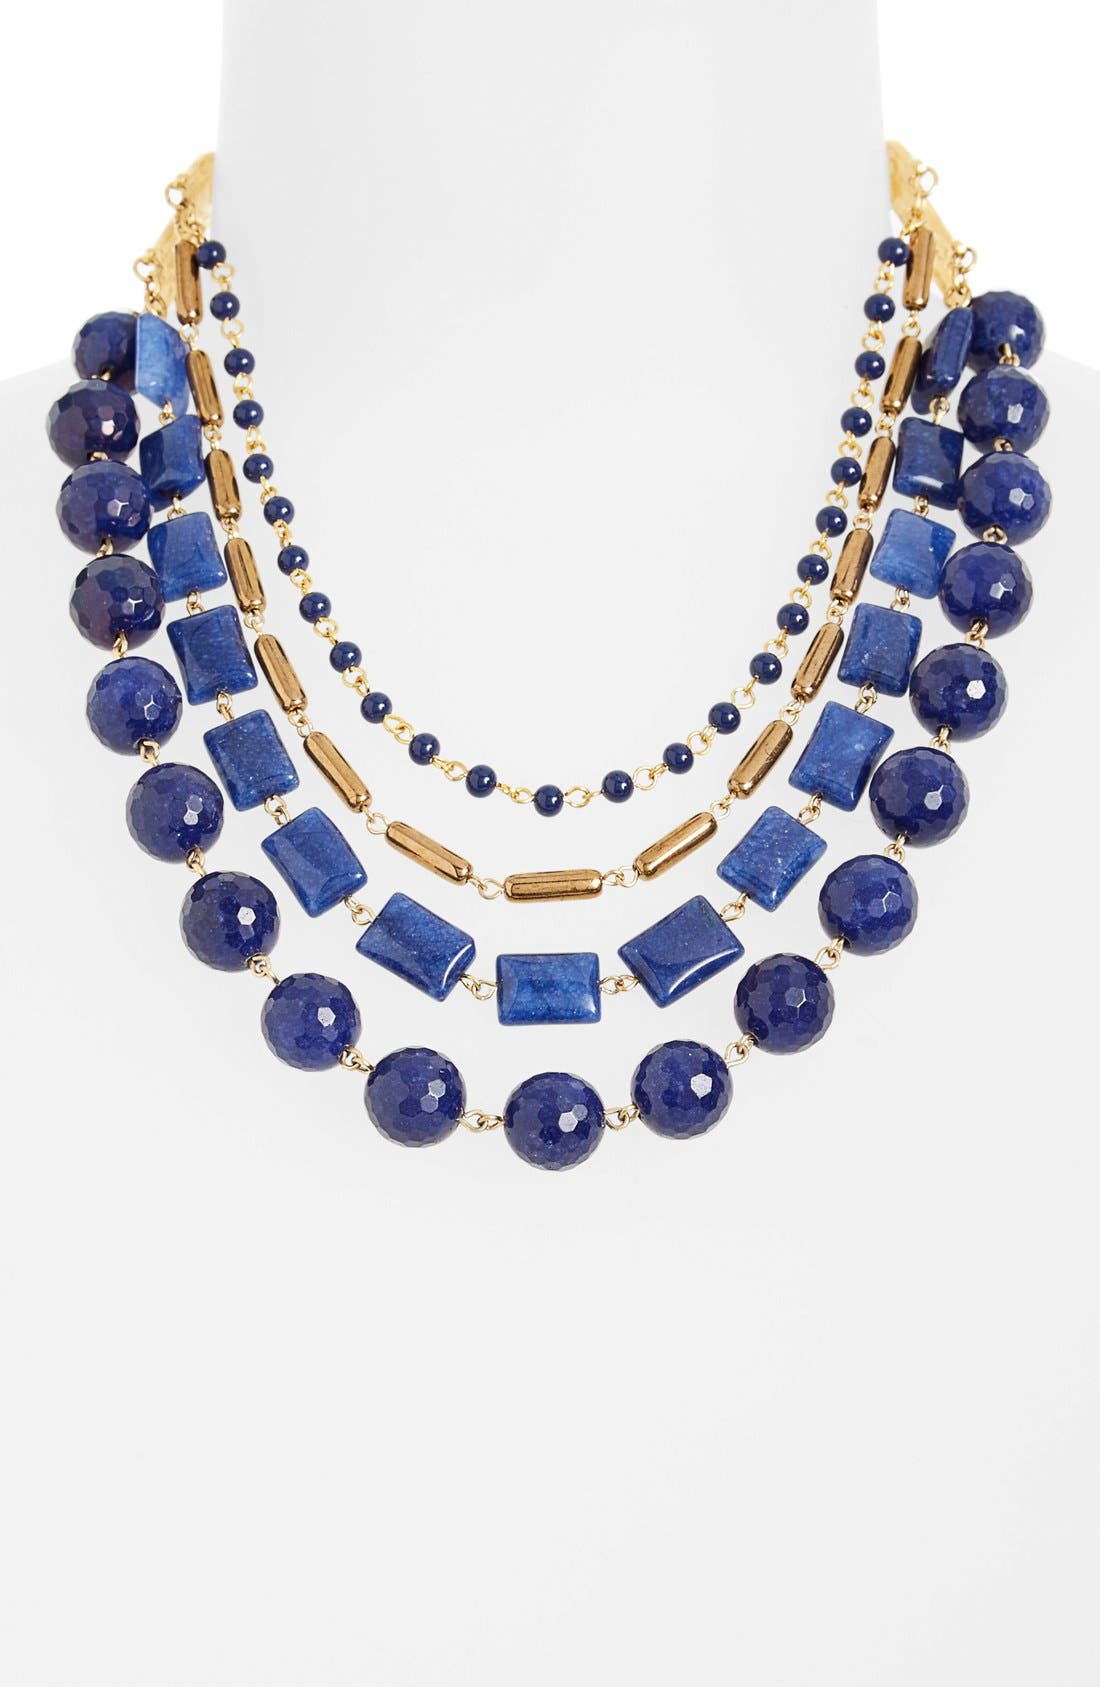 Main Image - David Aubrey Multistrand Stone Necklace